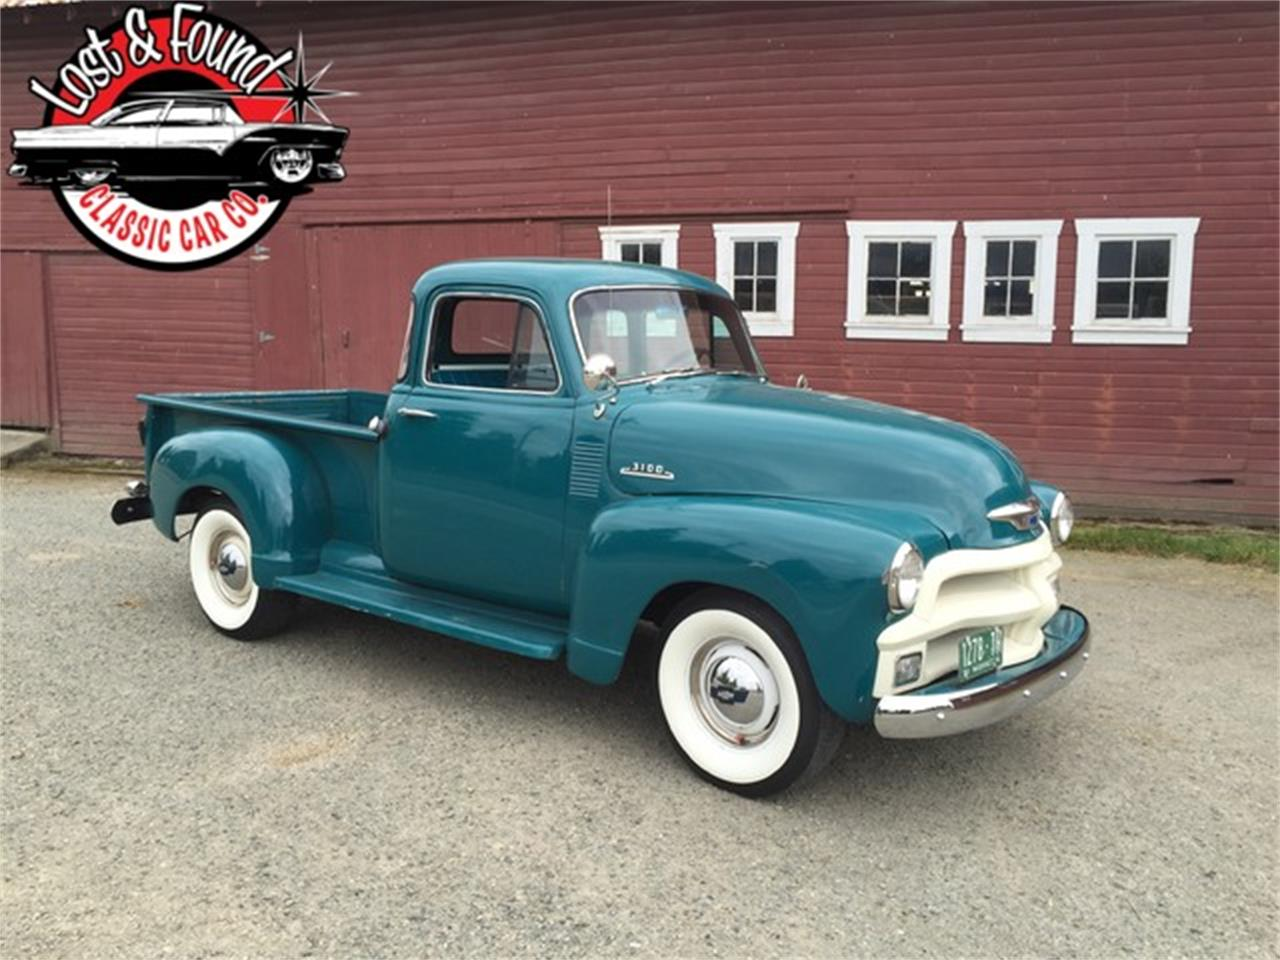 1954 Chevrolet Pickup For Sale Cc 890021 Pick Up Large Picture Of 54 J2qt